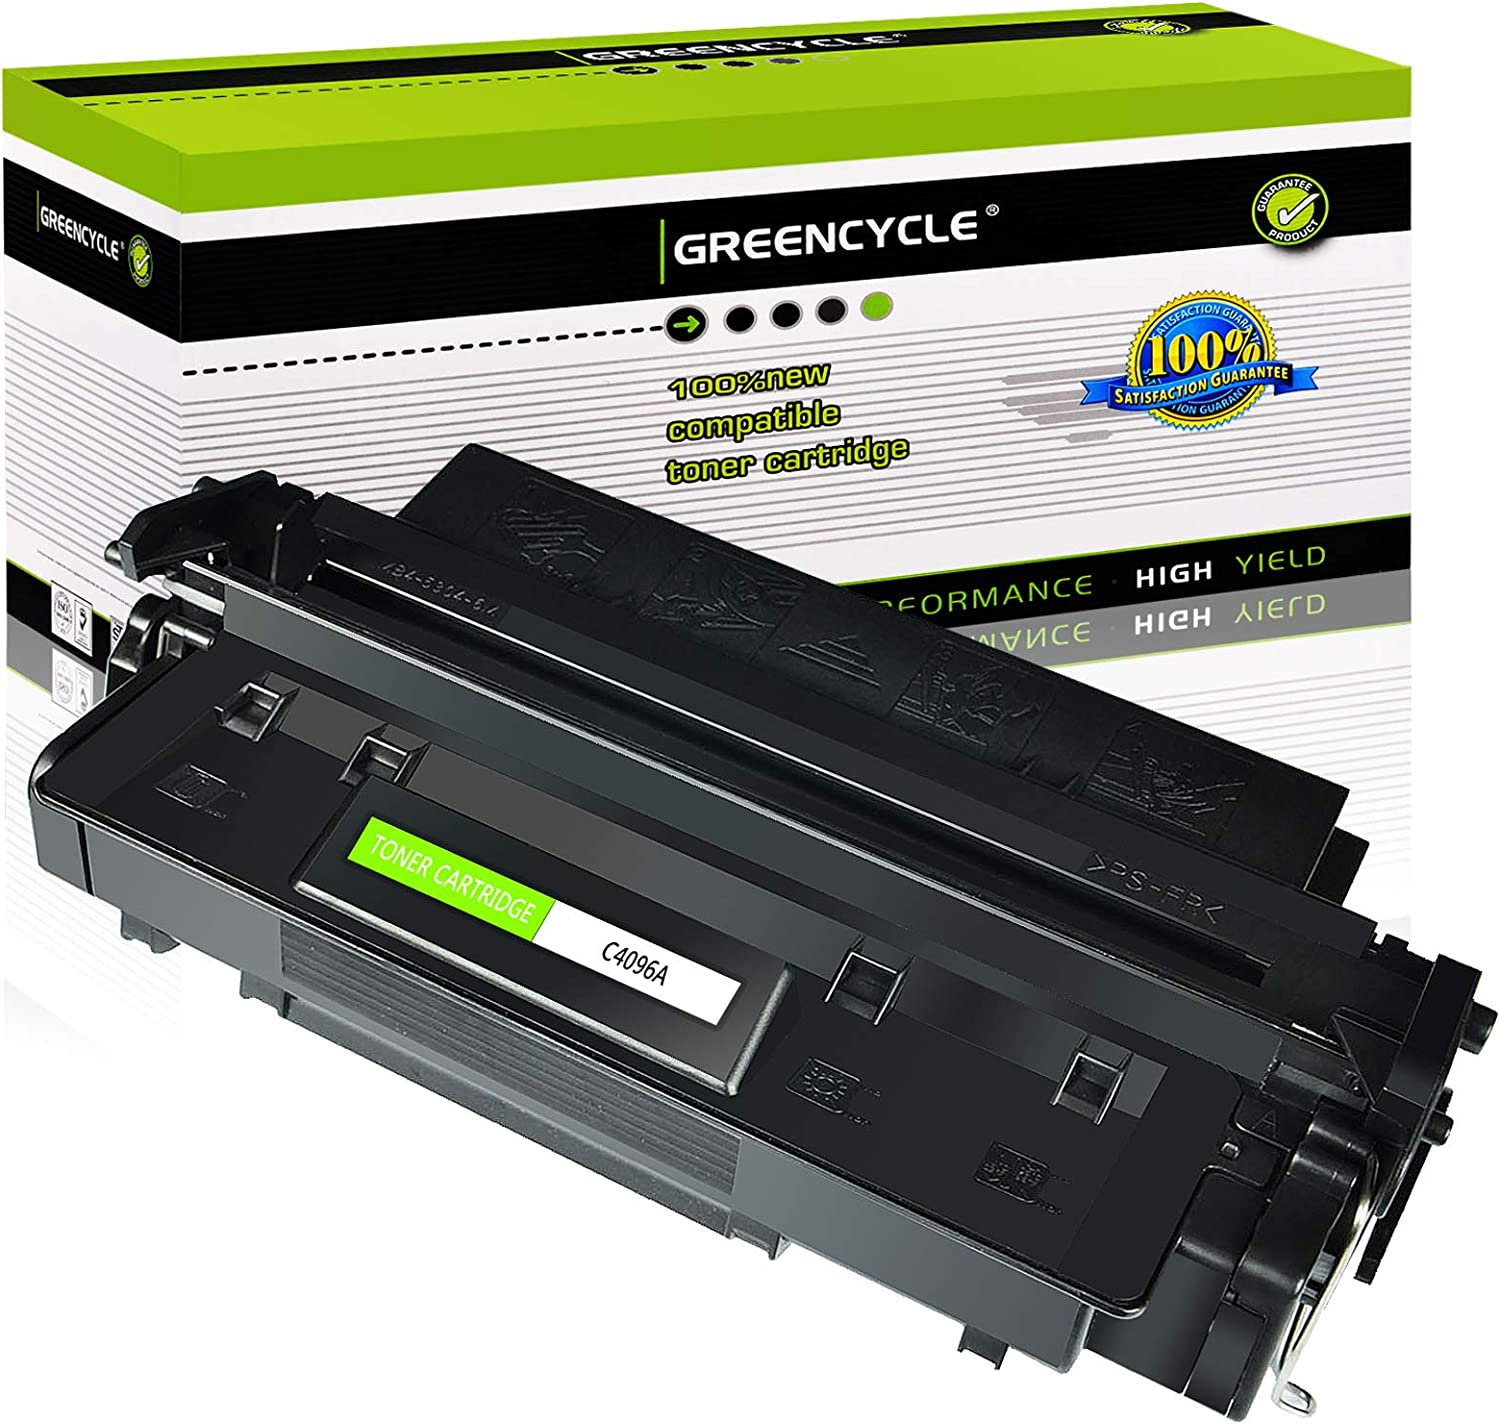 GREENCYCLE C4096A Laserjet Toner Cartridge Replacement Compatible For HP 96A LaserJet 2100 2100m 2100se 2100tn 2100xi 2200 2200d 2200dn 2200dse 2200dt 2200dtn Printers (1 Black)